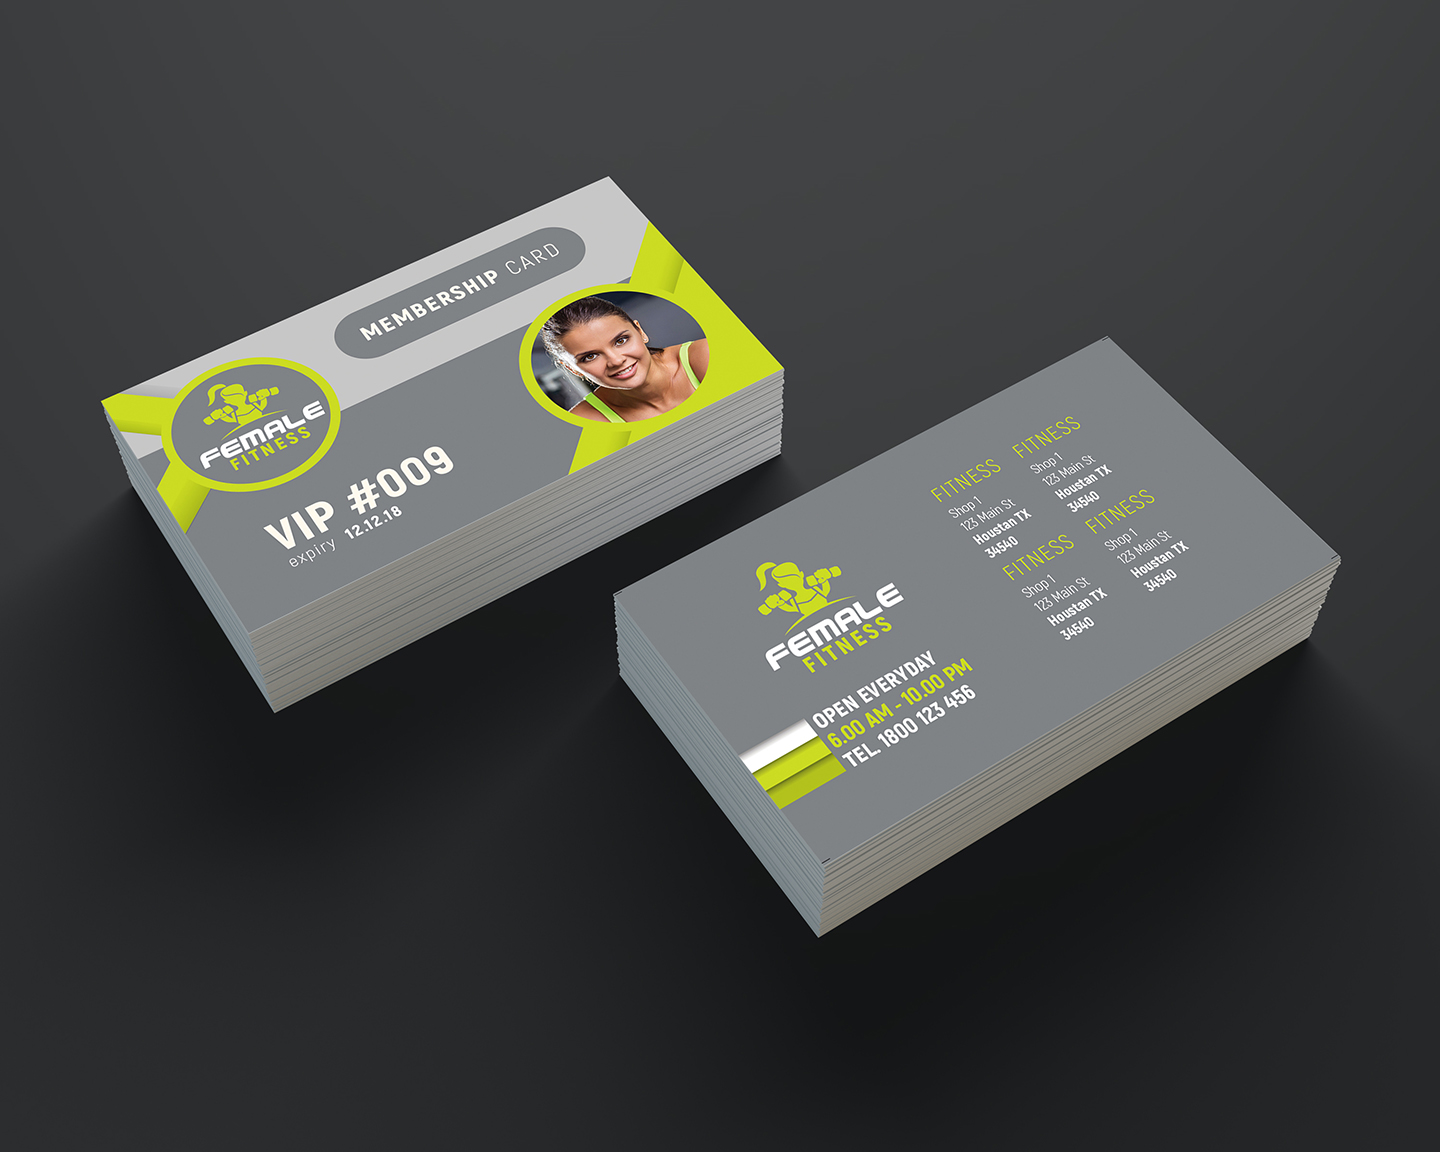 Fitness Business Cards Business Card Tips - Fitness business card template